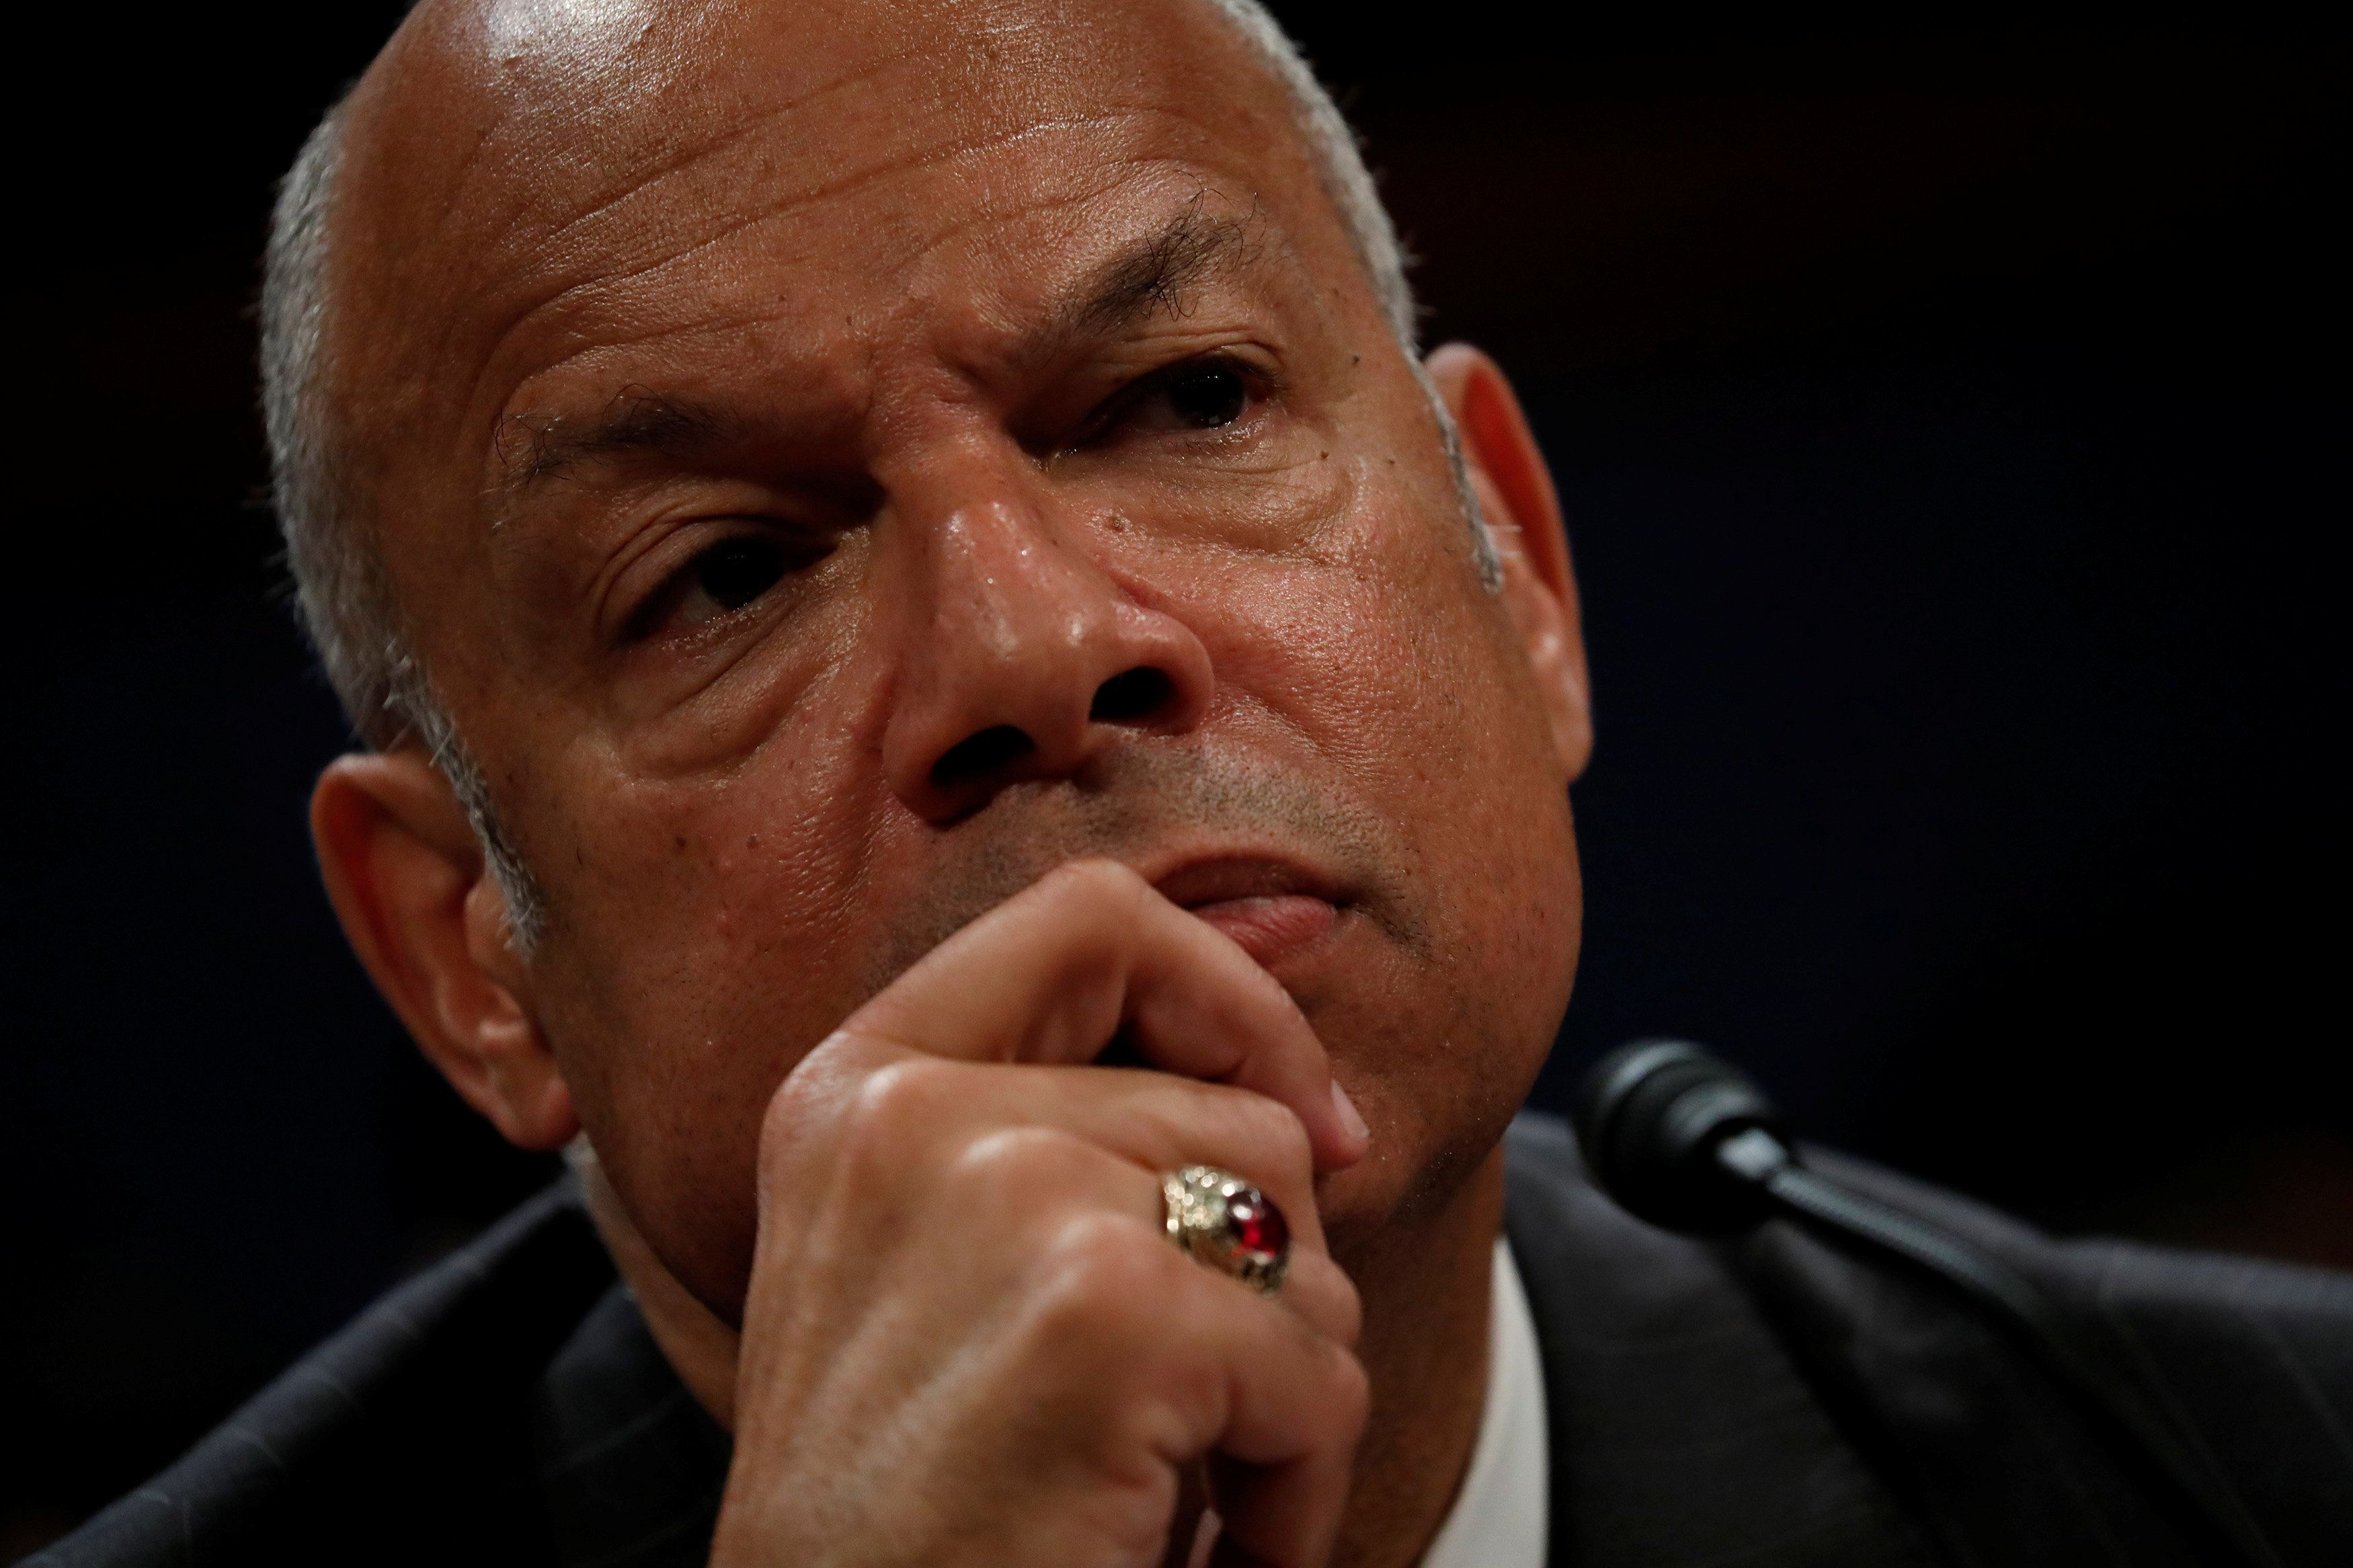 Former U.S. Secretary of Homeland Security Jeh Johnson testifies about Russian meddling in the 2016 election before the House Intelligence Committee on Capitol Hill in Washington, U.S., June 21, 2017. REUTERS/Aaron P. Bernstein